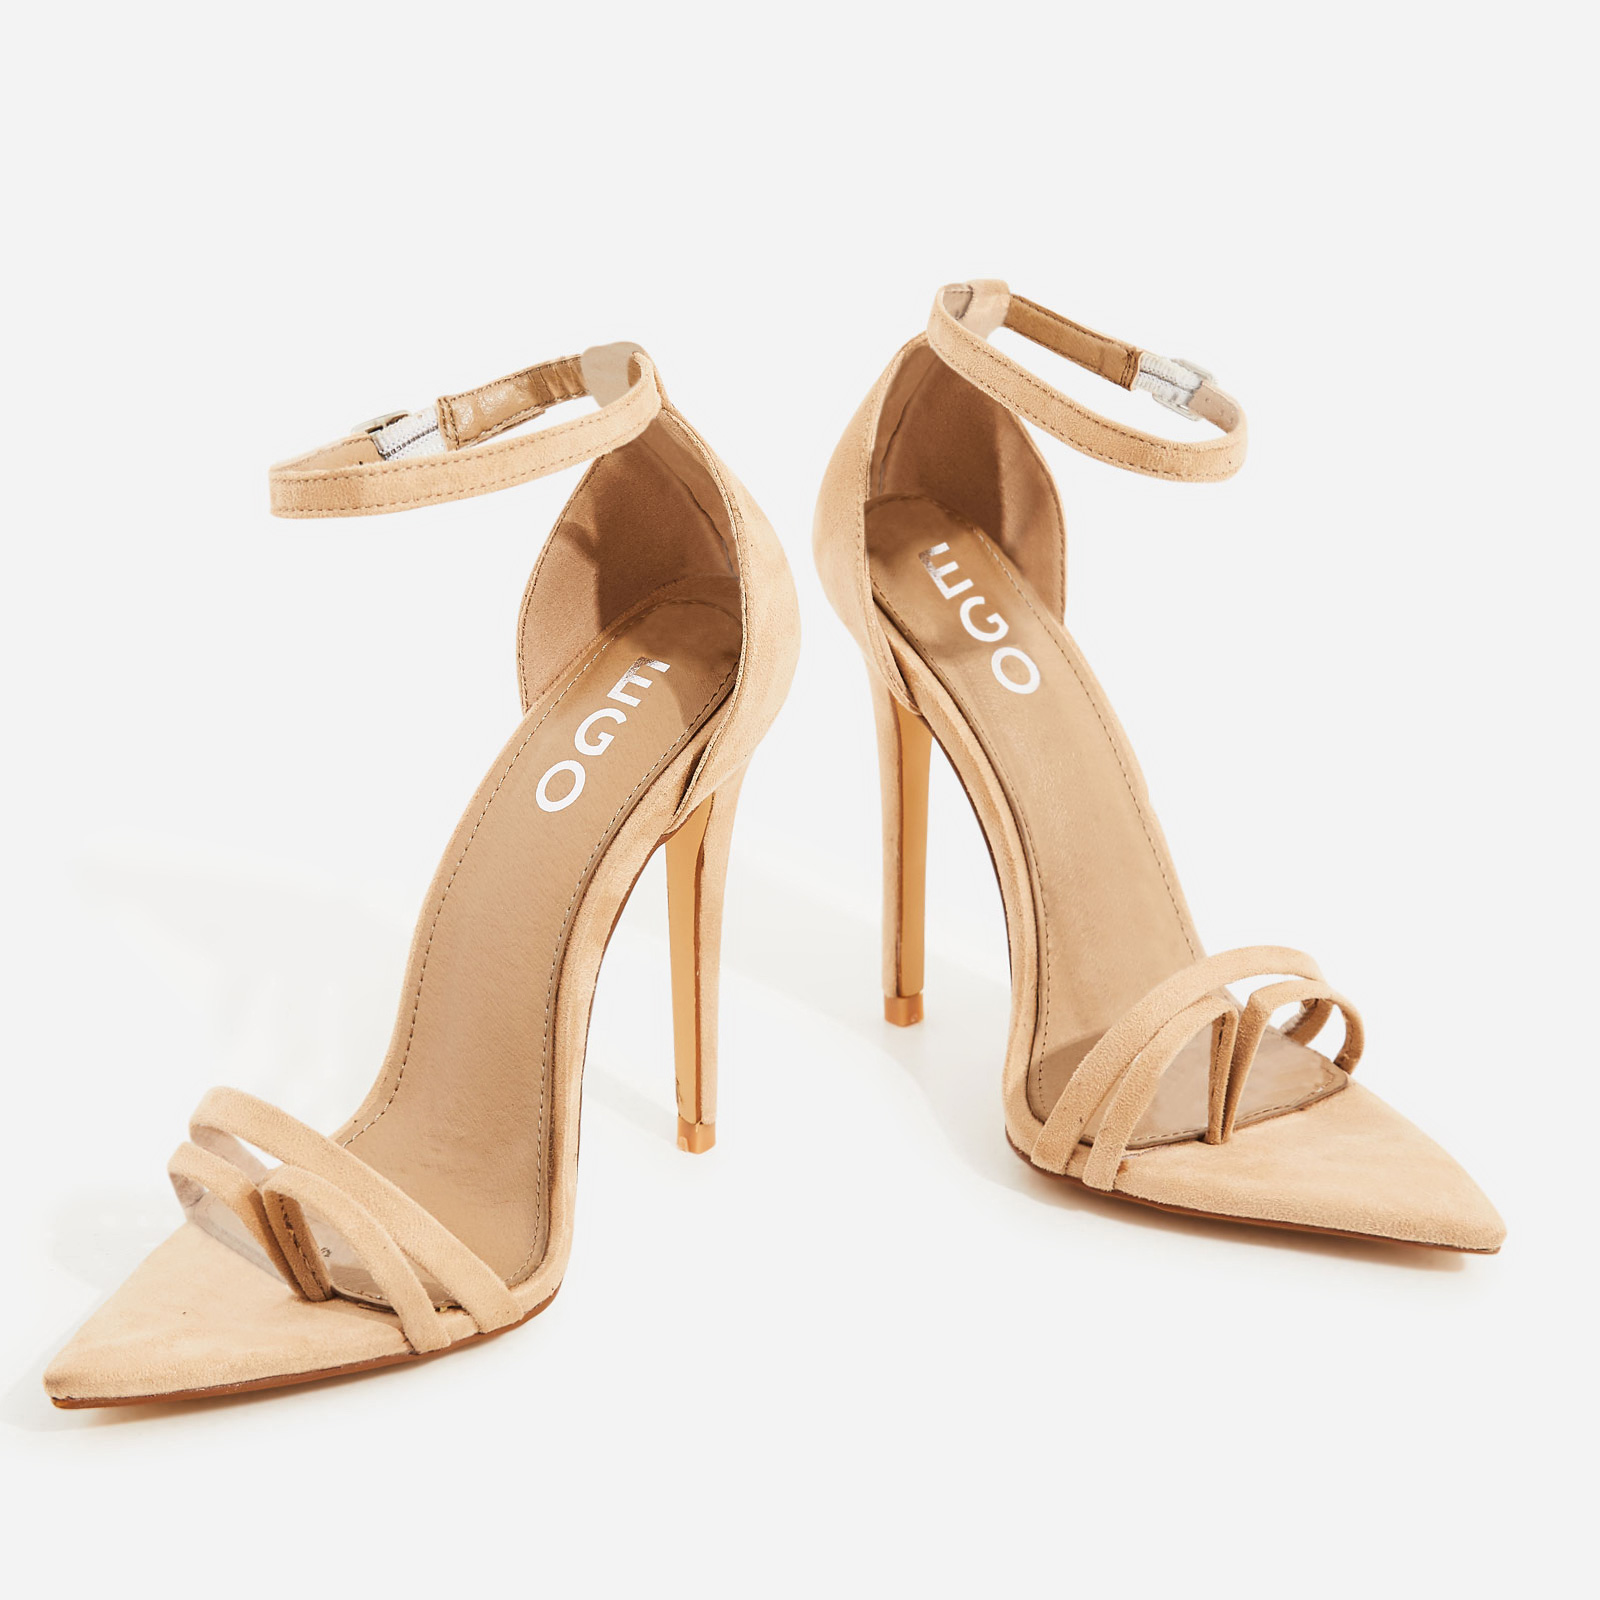 Fern Barley There Strappy Toe Post Heel In Nude Faux Suede